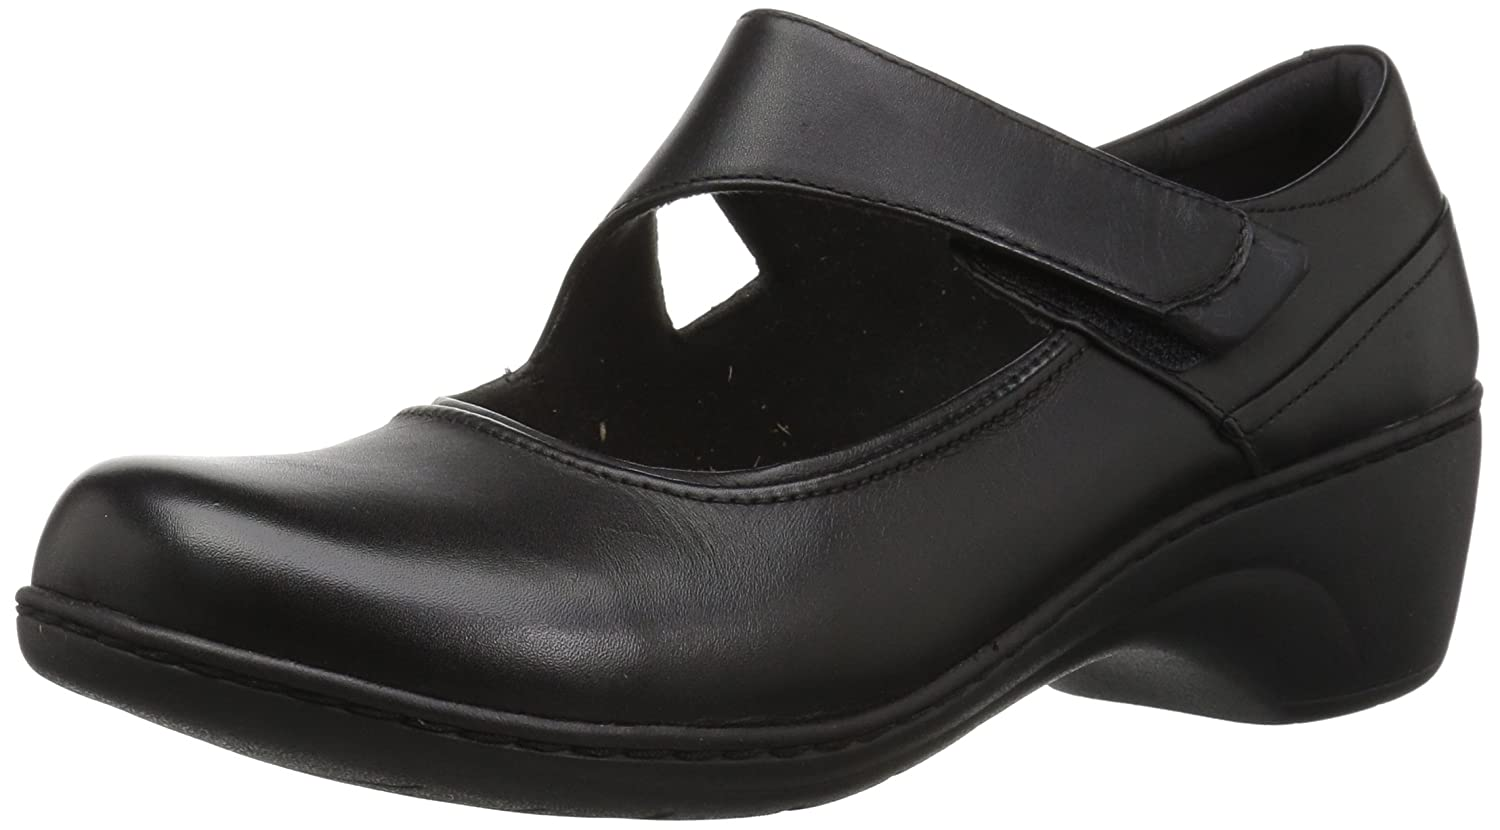 CLARKS Women's Channing Penny Mary Jane Flat